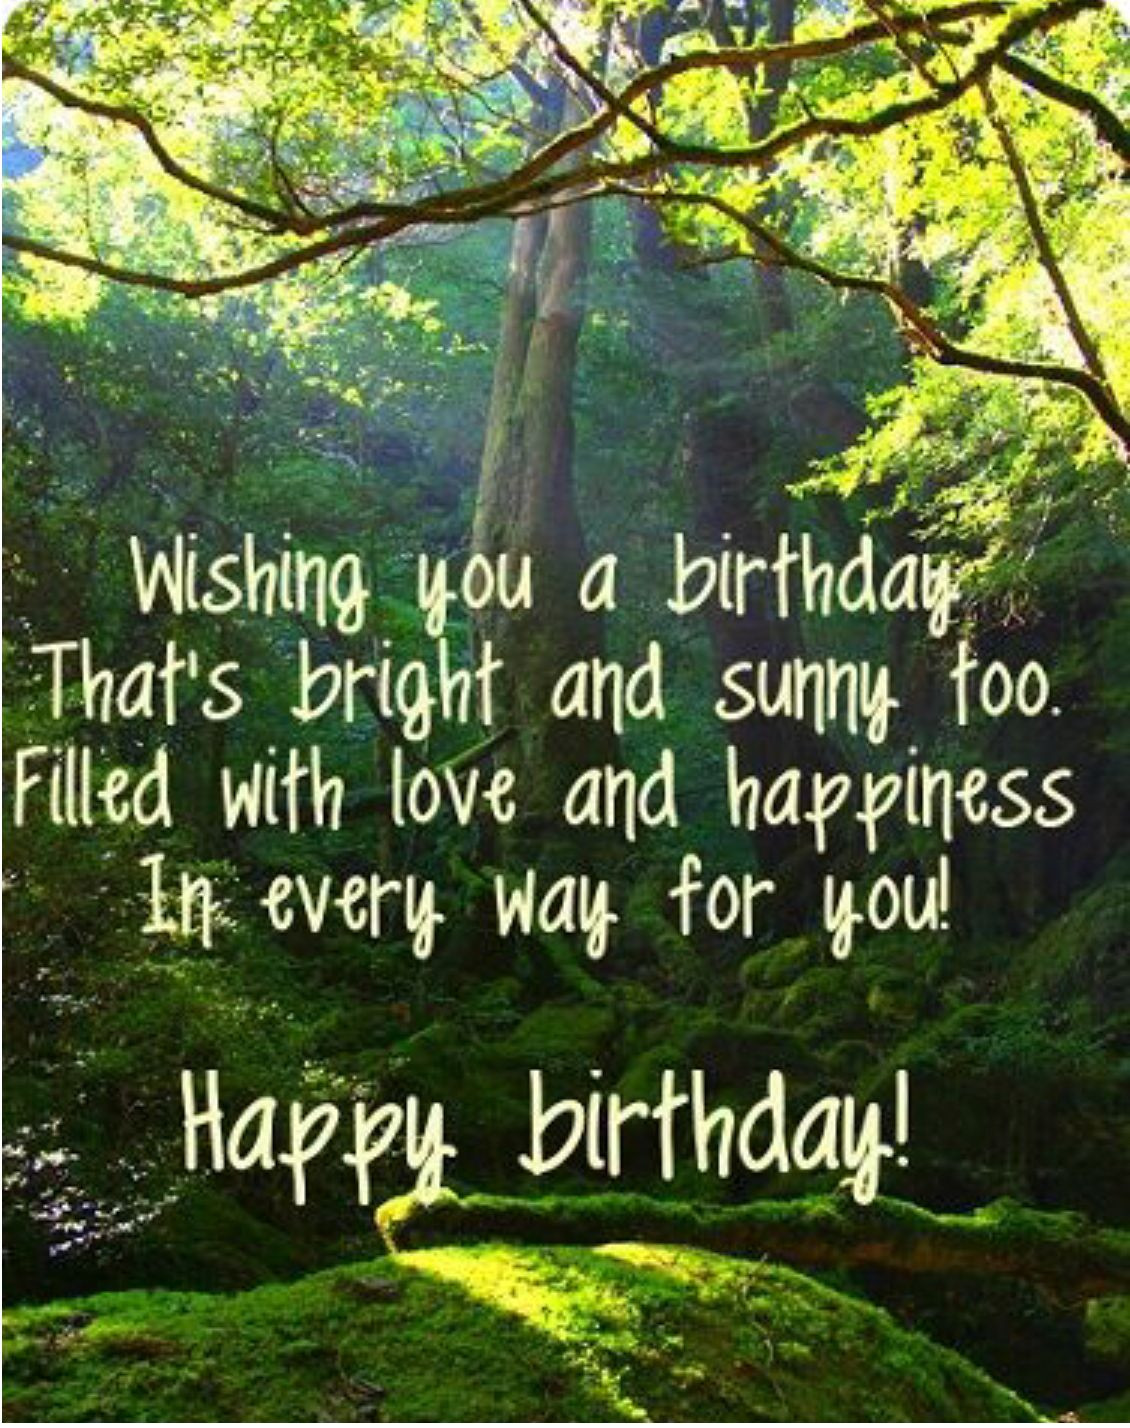 Pin By Jen On Birthday Memes Beautiful Birthday Wishes Happy Birthday Wishes Cards Birthday Wishes Messages